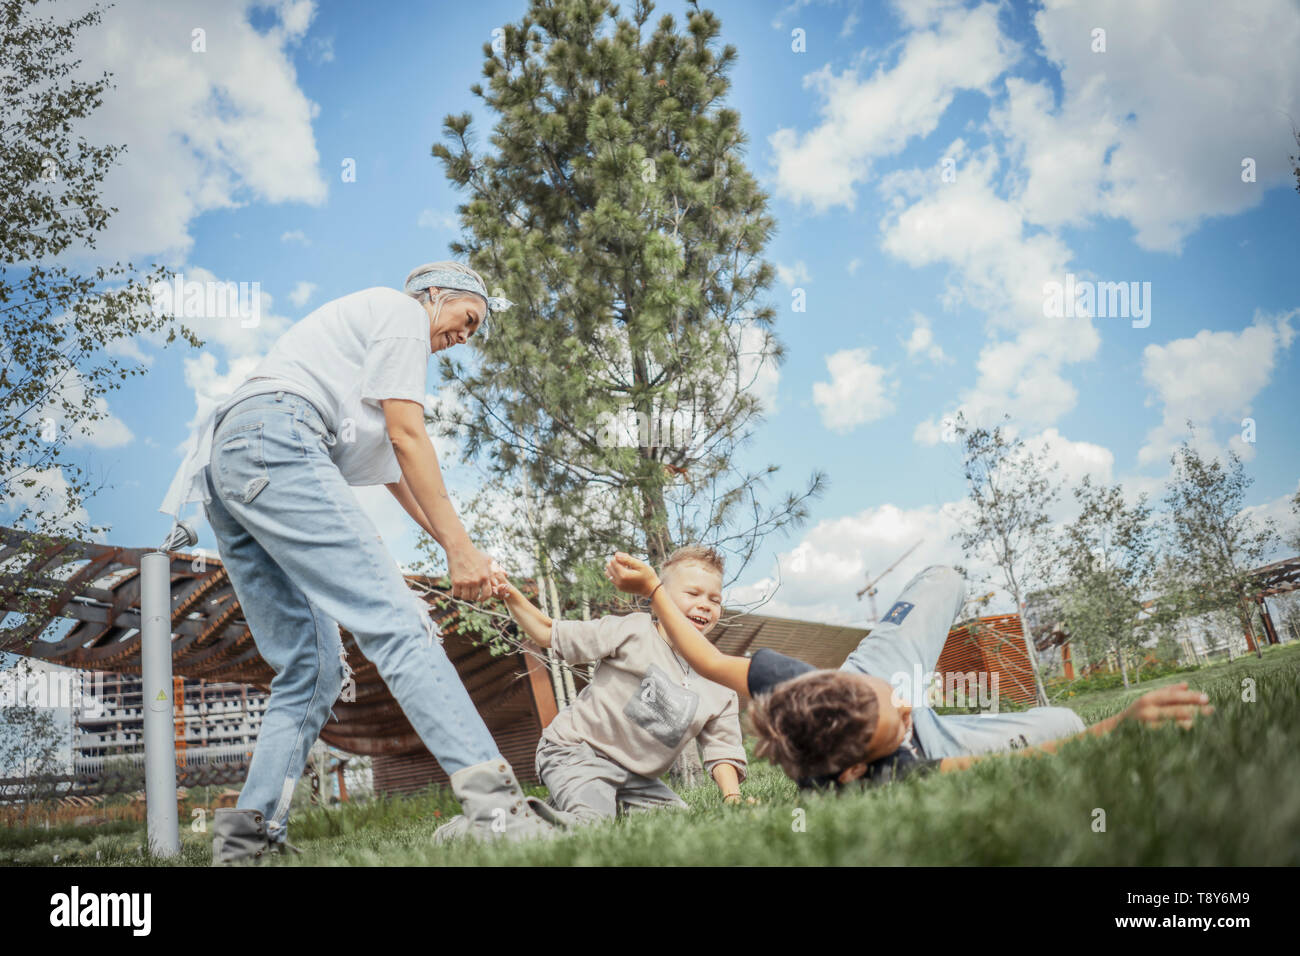 Young blonde mum turning around, whirling with her sons at park. Happy family concept. Family is on foreground and focus, park is blurred. - Stock Image